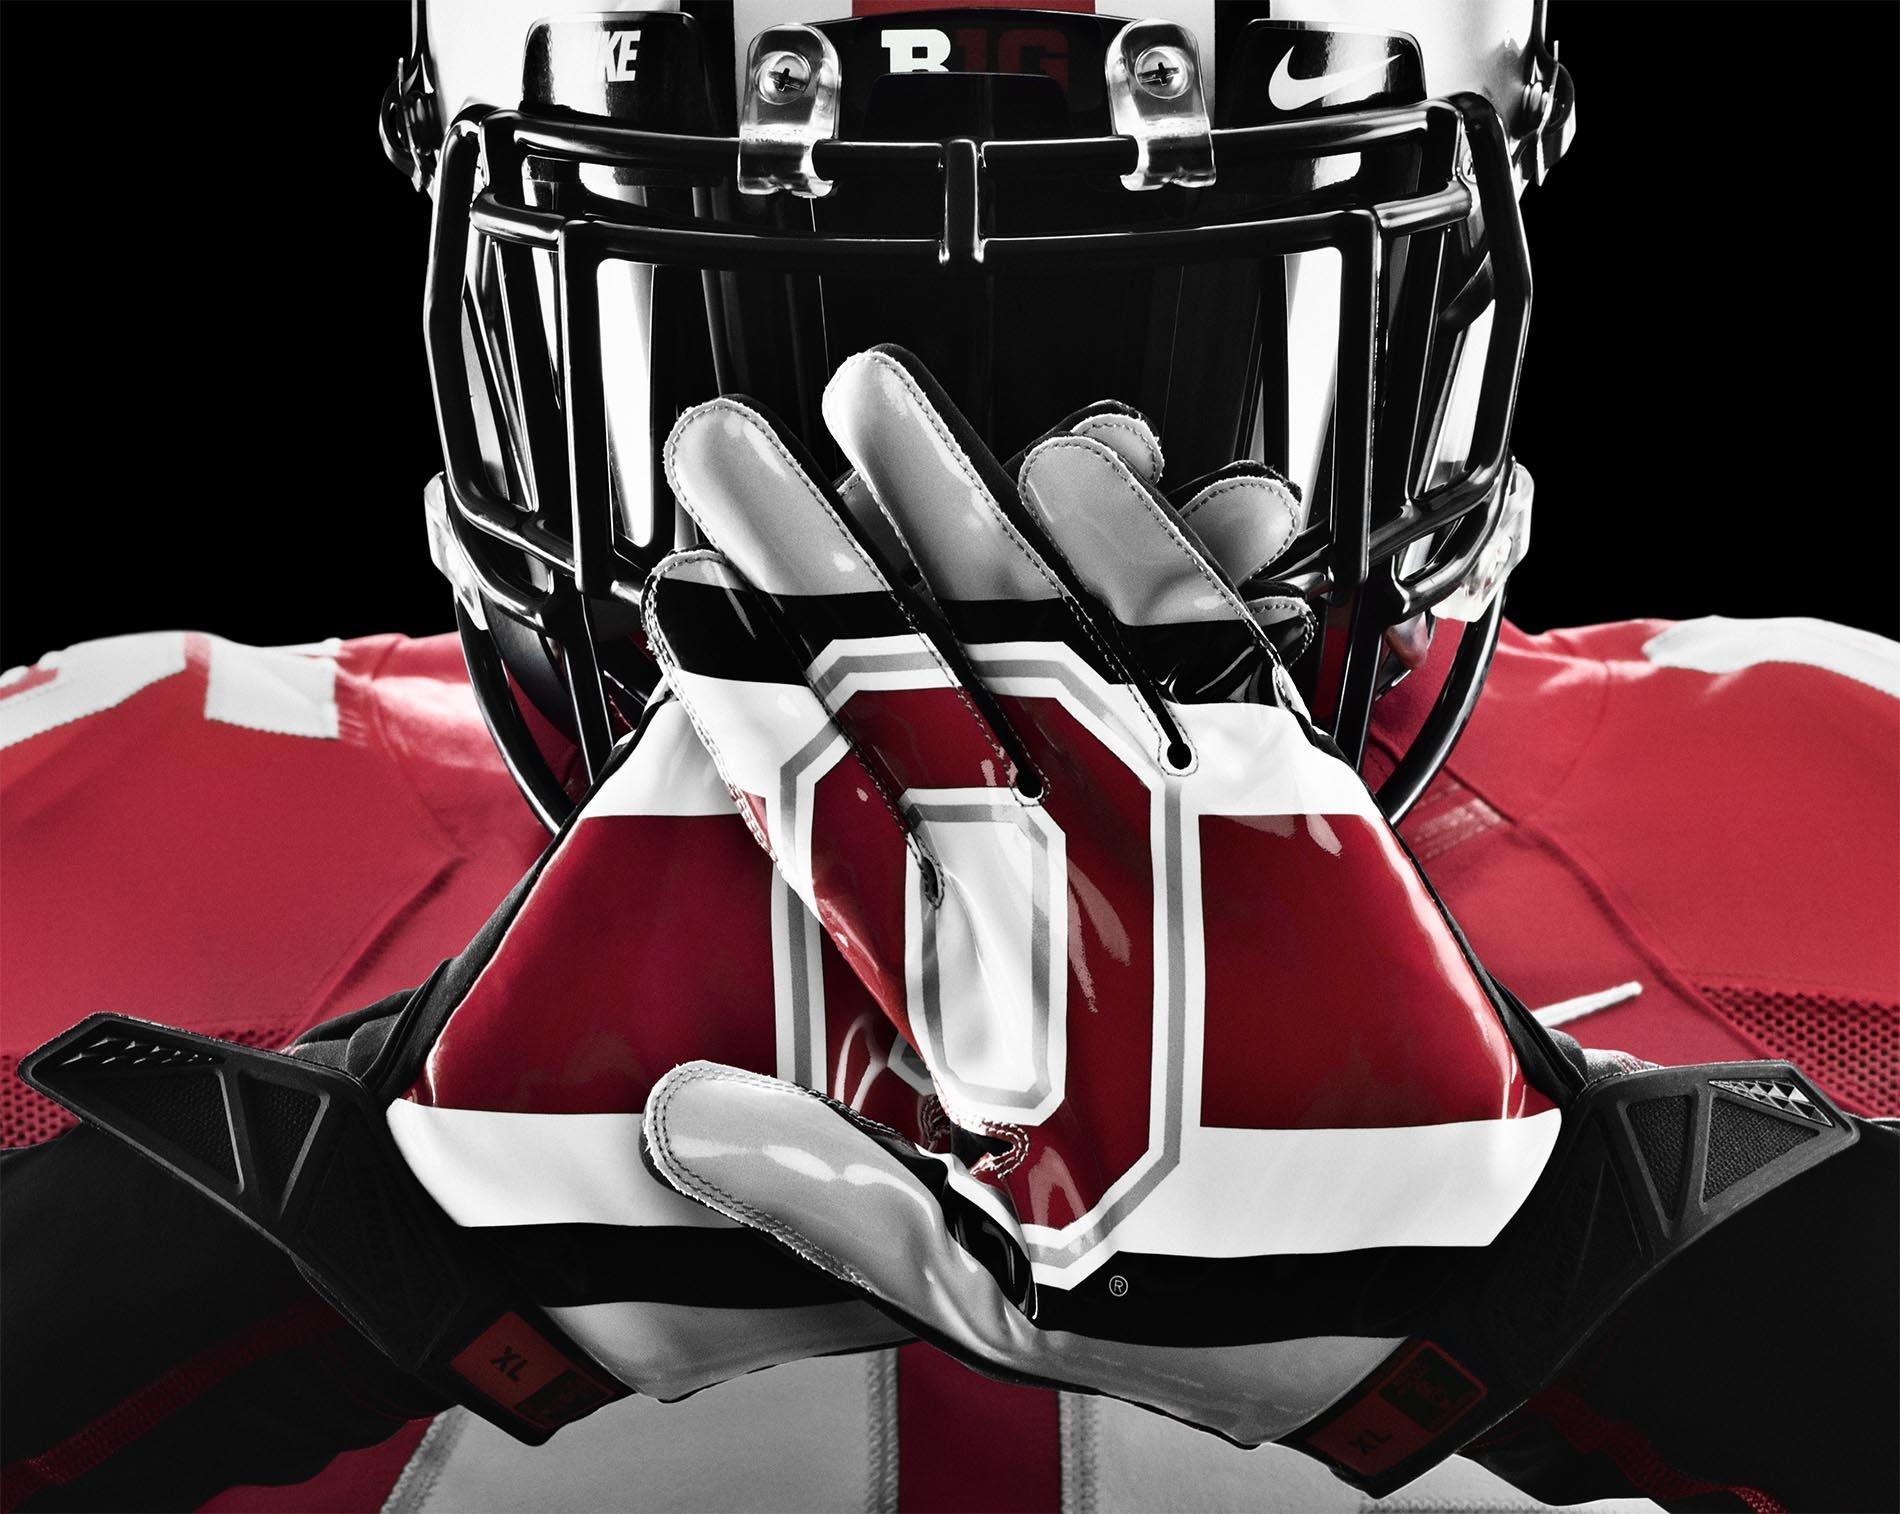 Ohio State Buckeyes Wallpaper HD - WallpaperSafari